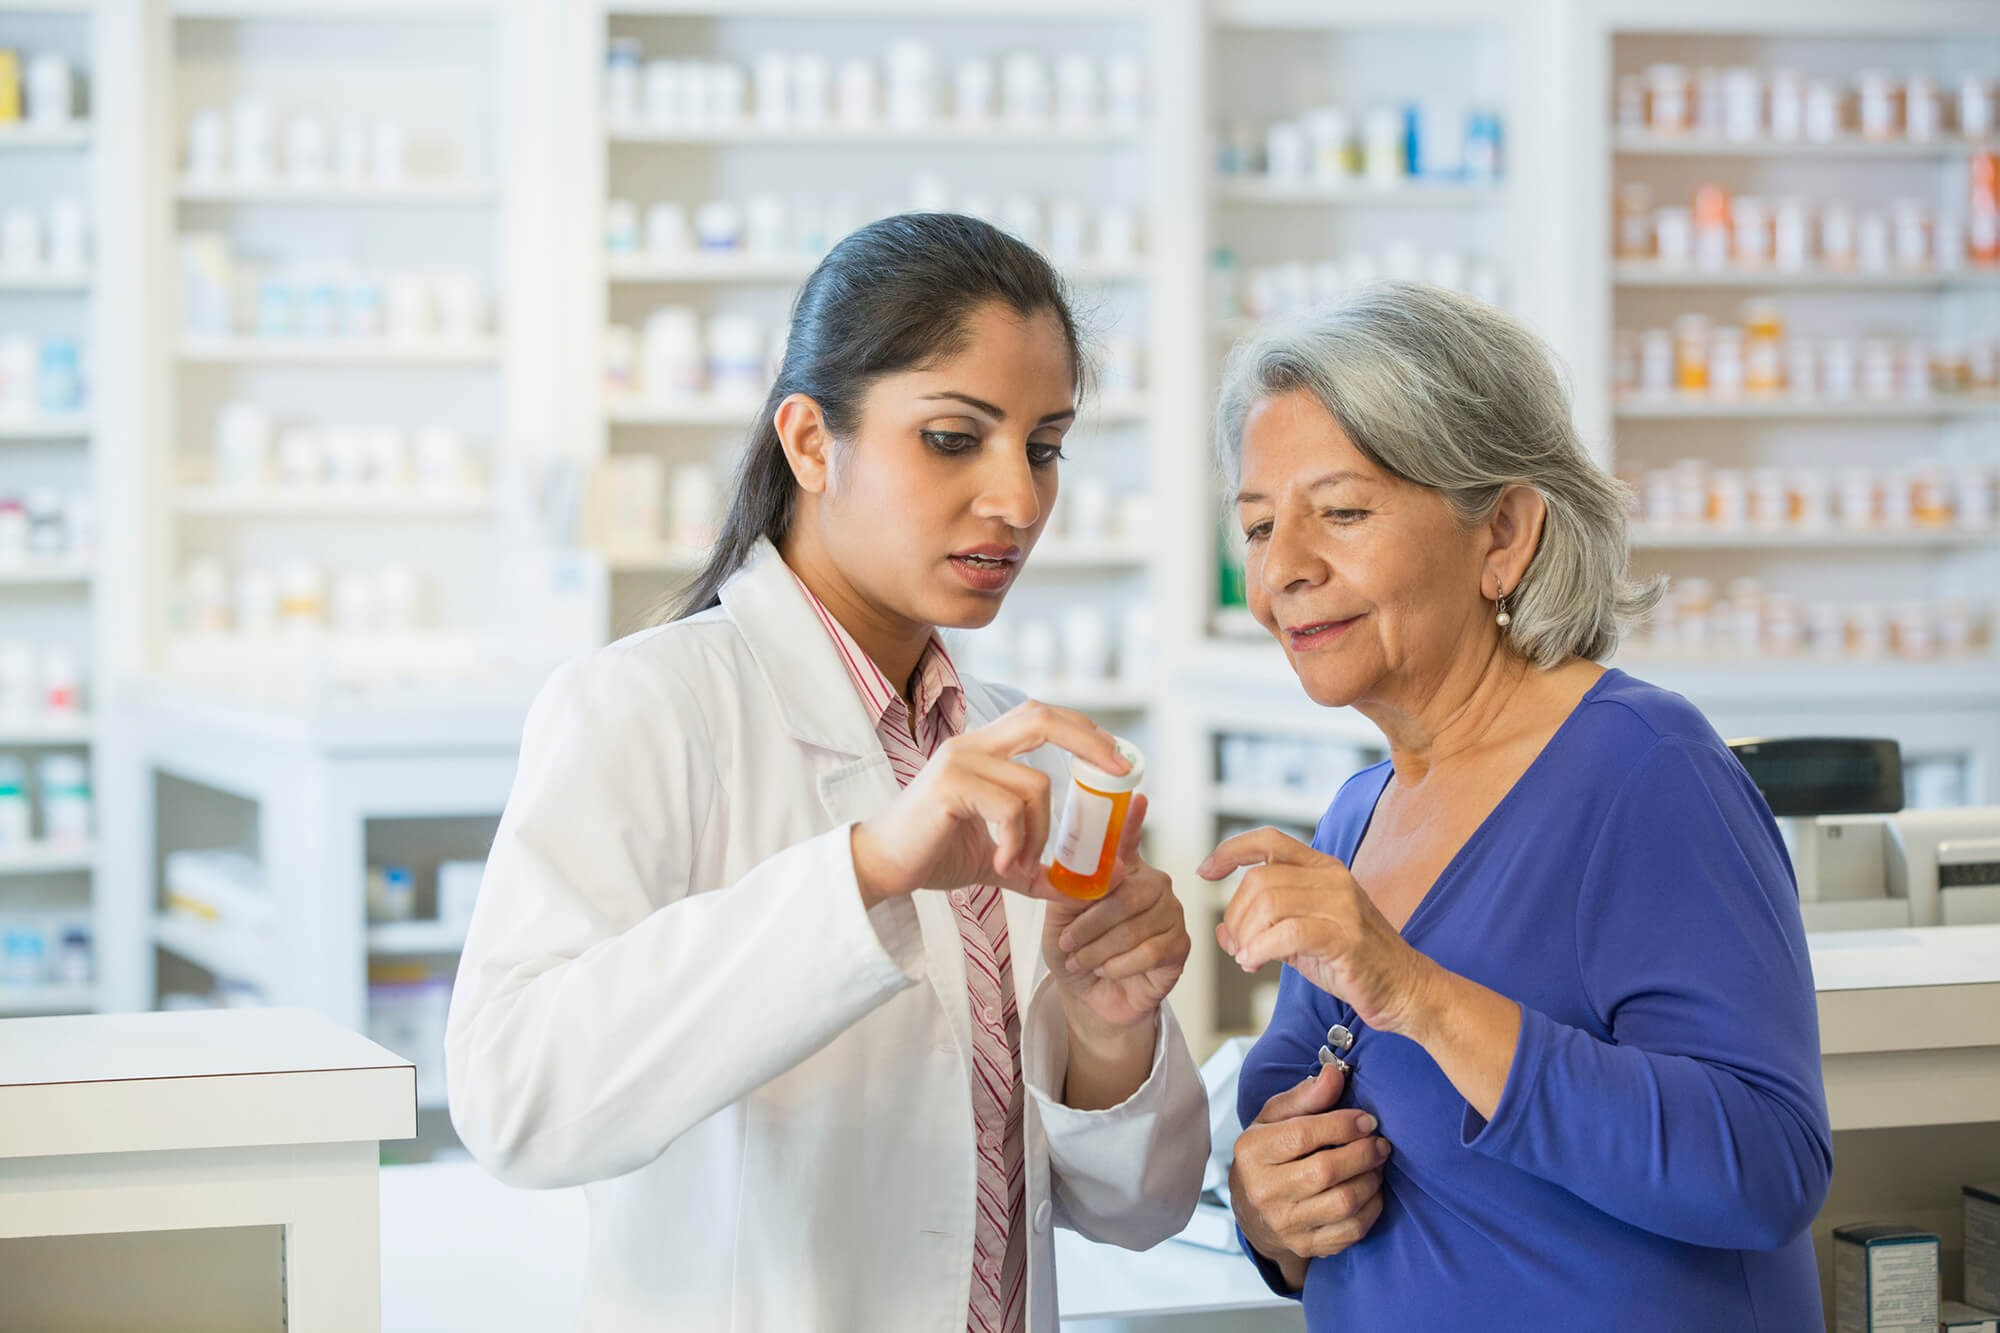 Medication, Vaccination Uptake Improved by Involving Pharmacists in Elder Cancer Care